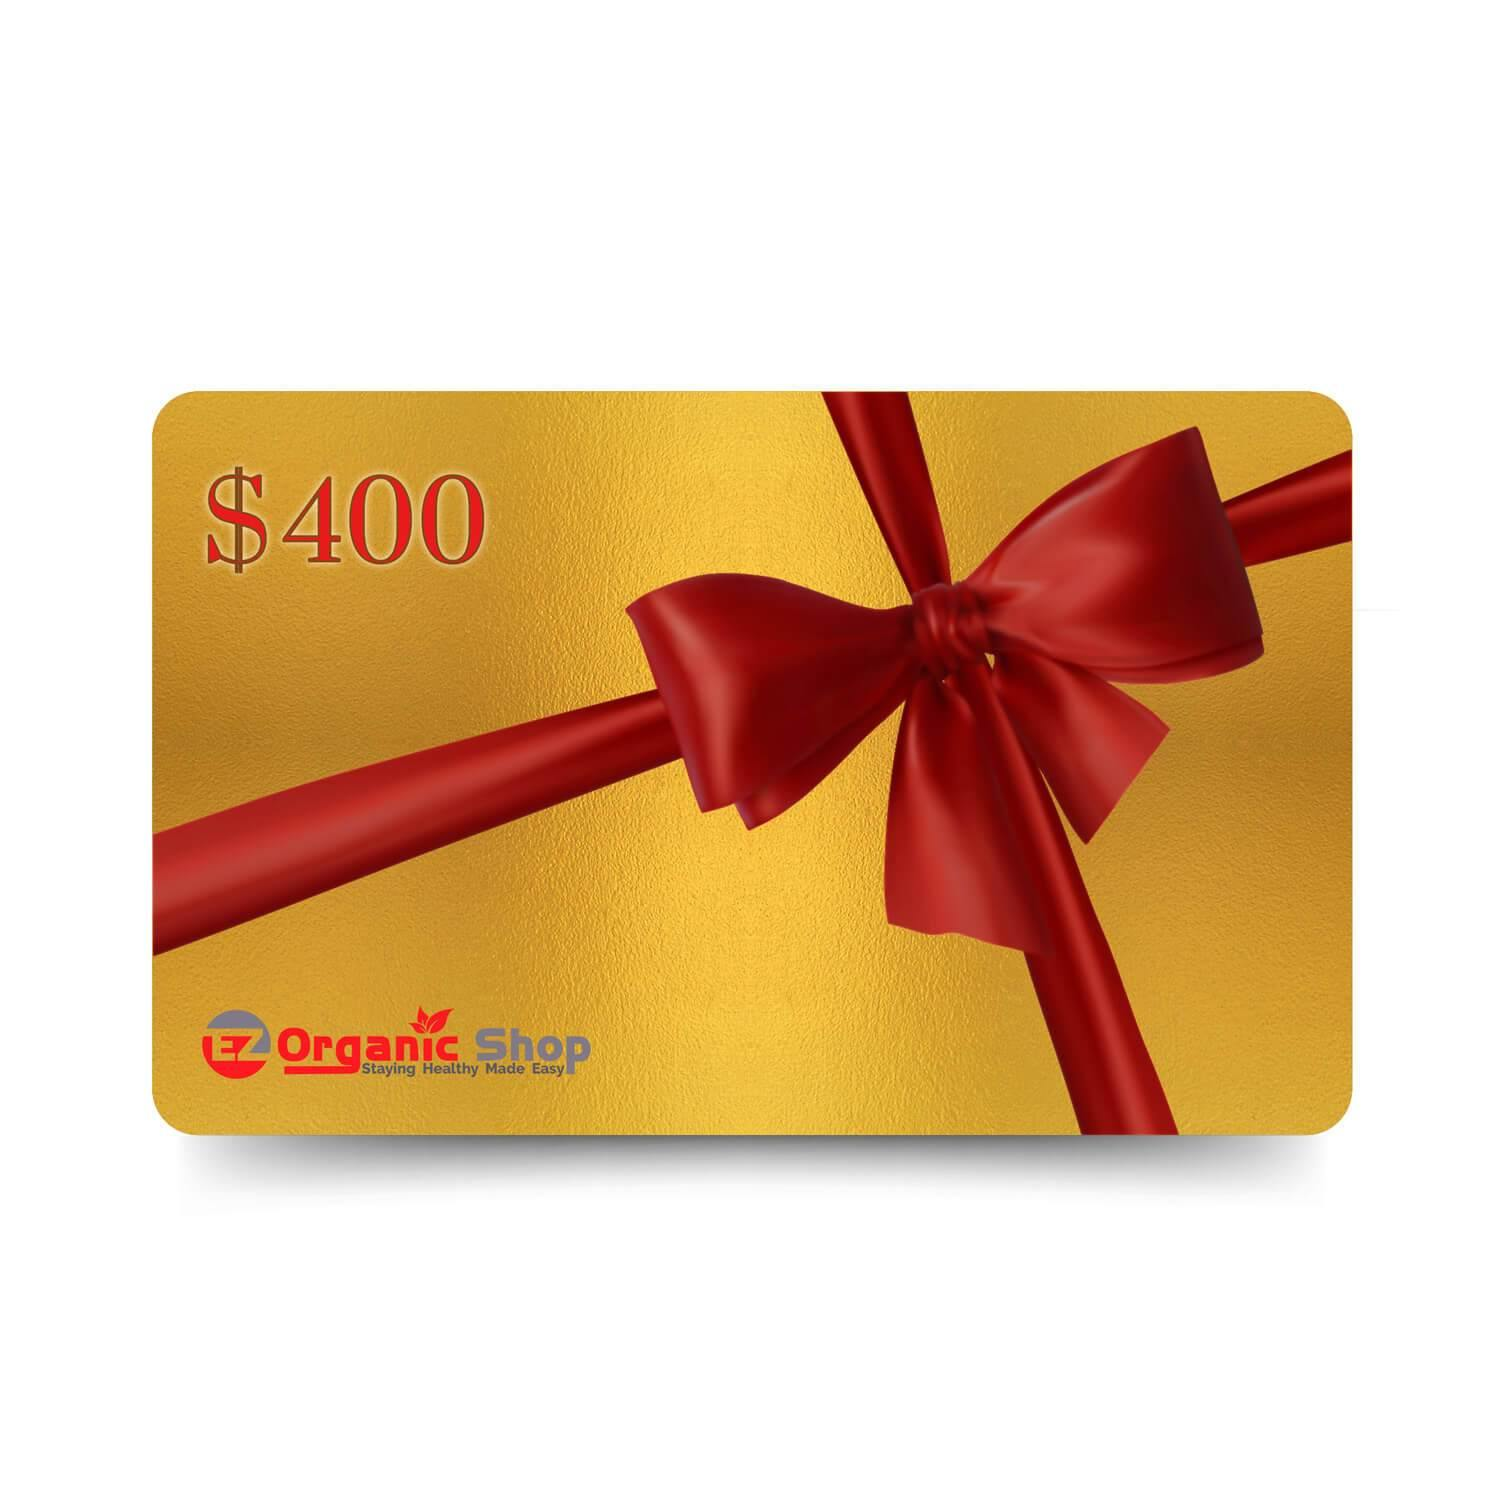 EZ Organic Shop $400 Gift Card - EZ Organic Shop